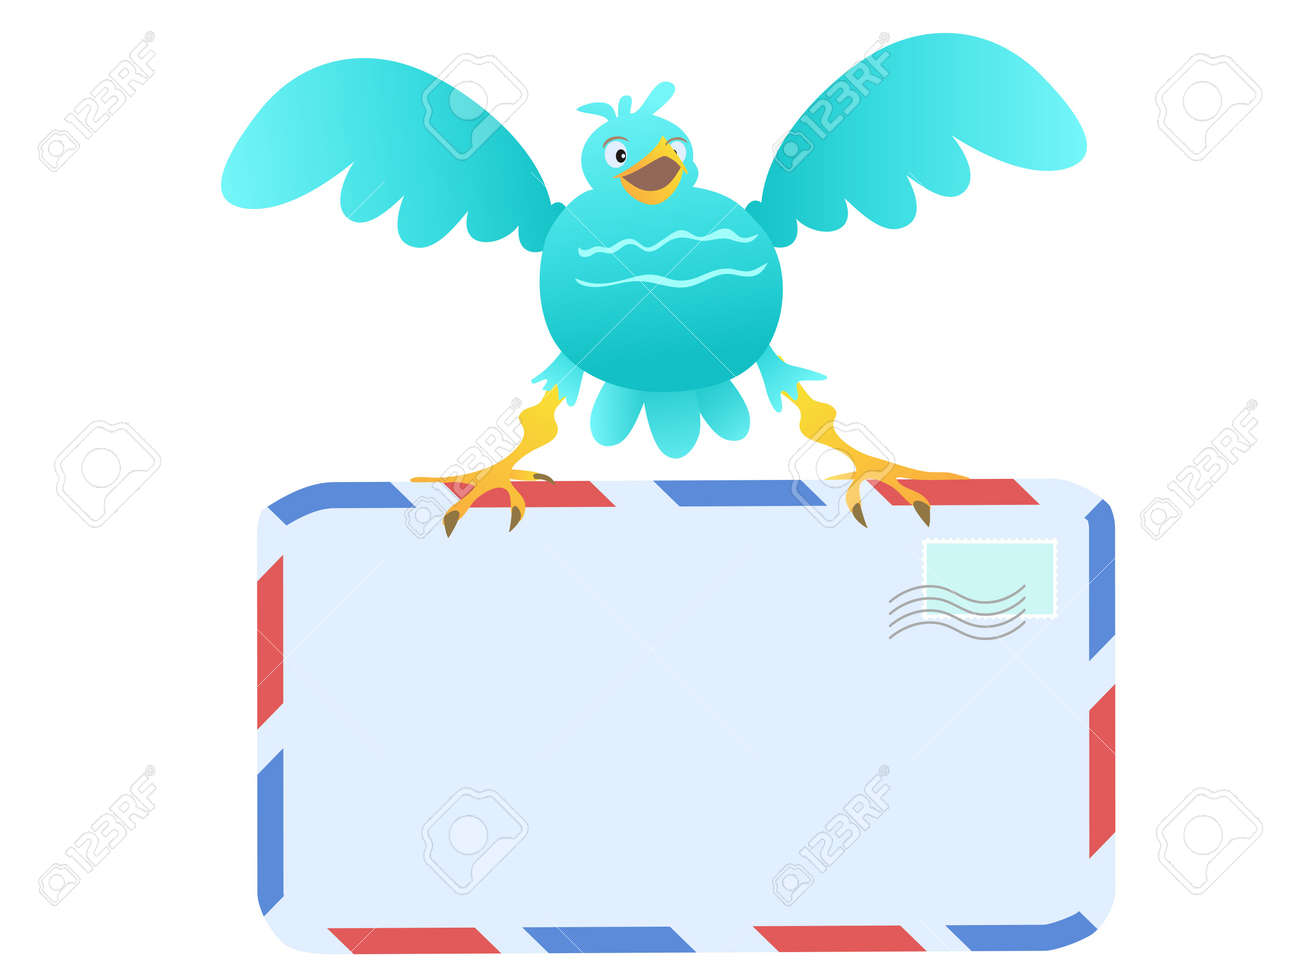 Funny Blue Bird carrying mail Stock Vector - 10419631